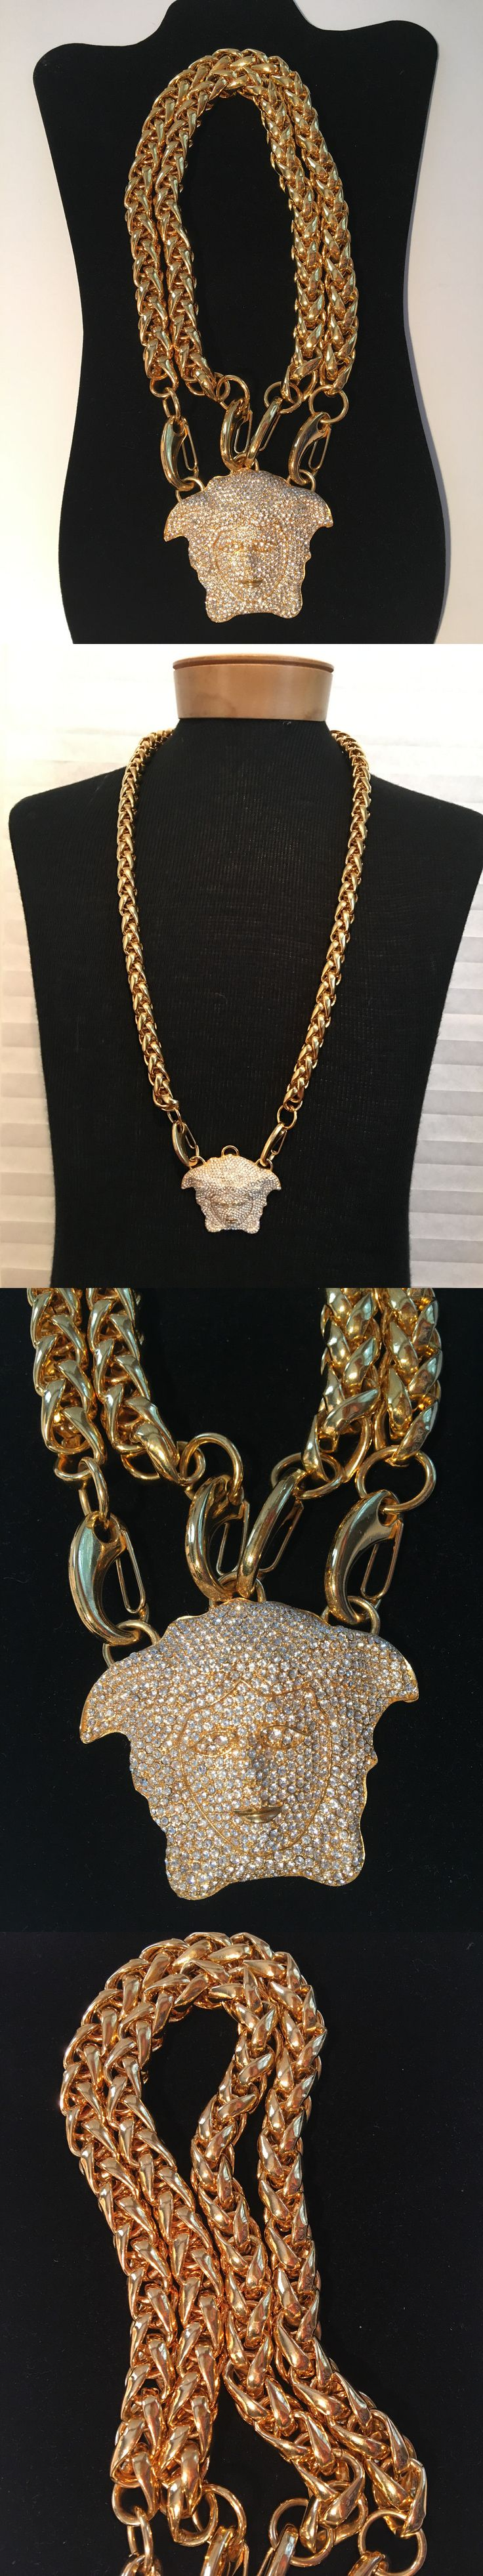 Necklaces and Pendants 155101: Nwt Authentic Versace Gold Crystal Medusa Head Chunky Chain Necklace -> BUY IT NOW ONLY: $1800 on eBay!